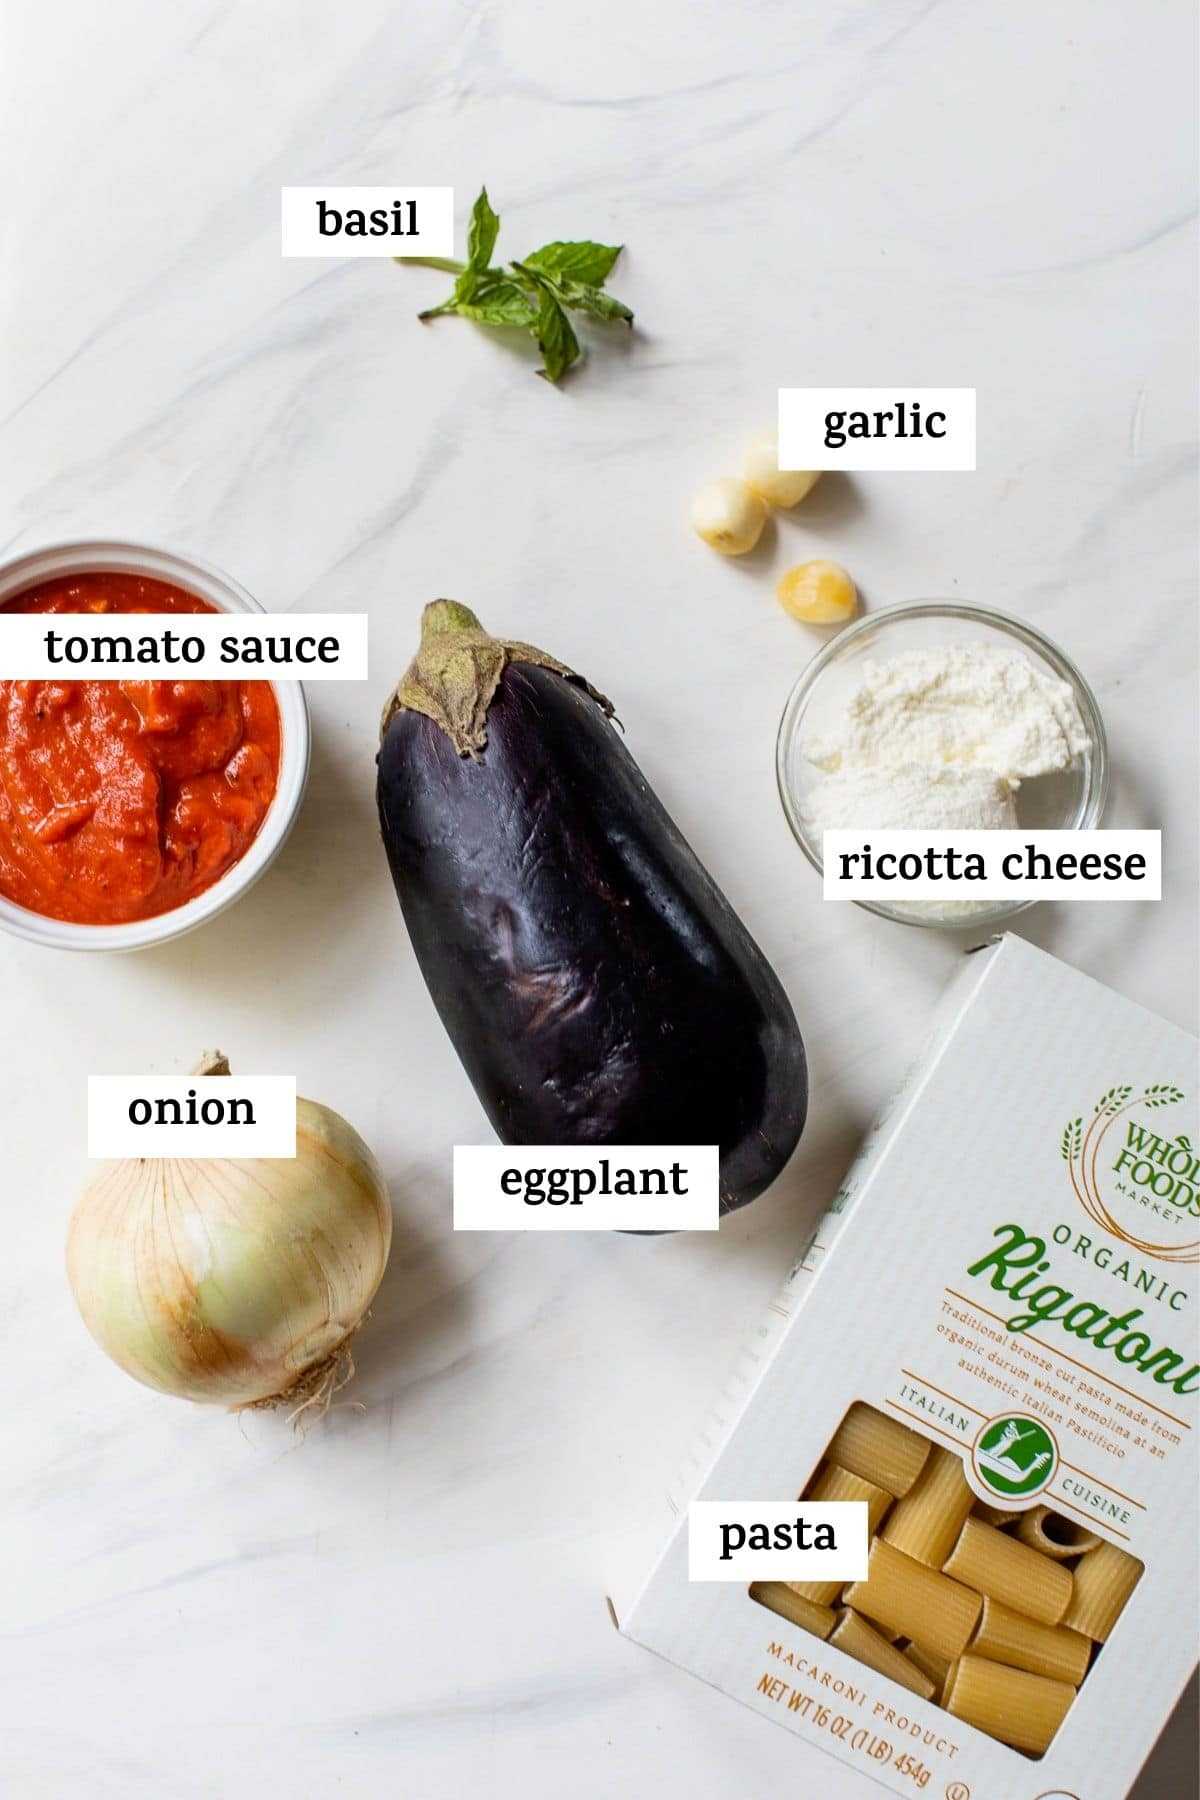 ingredients to make pasta with text overlay